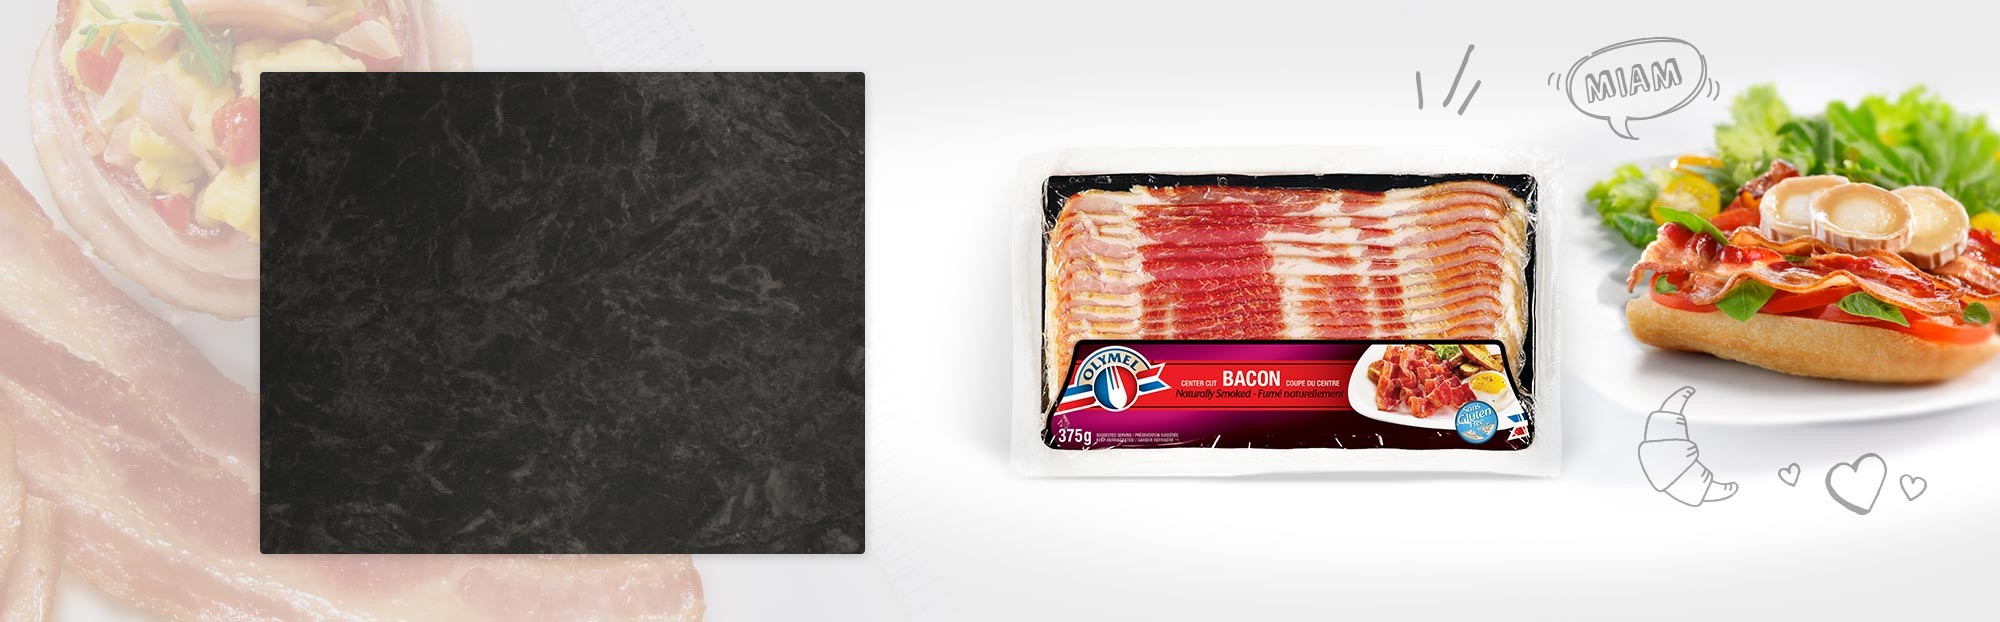 Bacon fumé naturellement